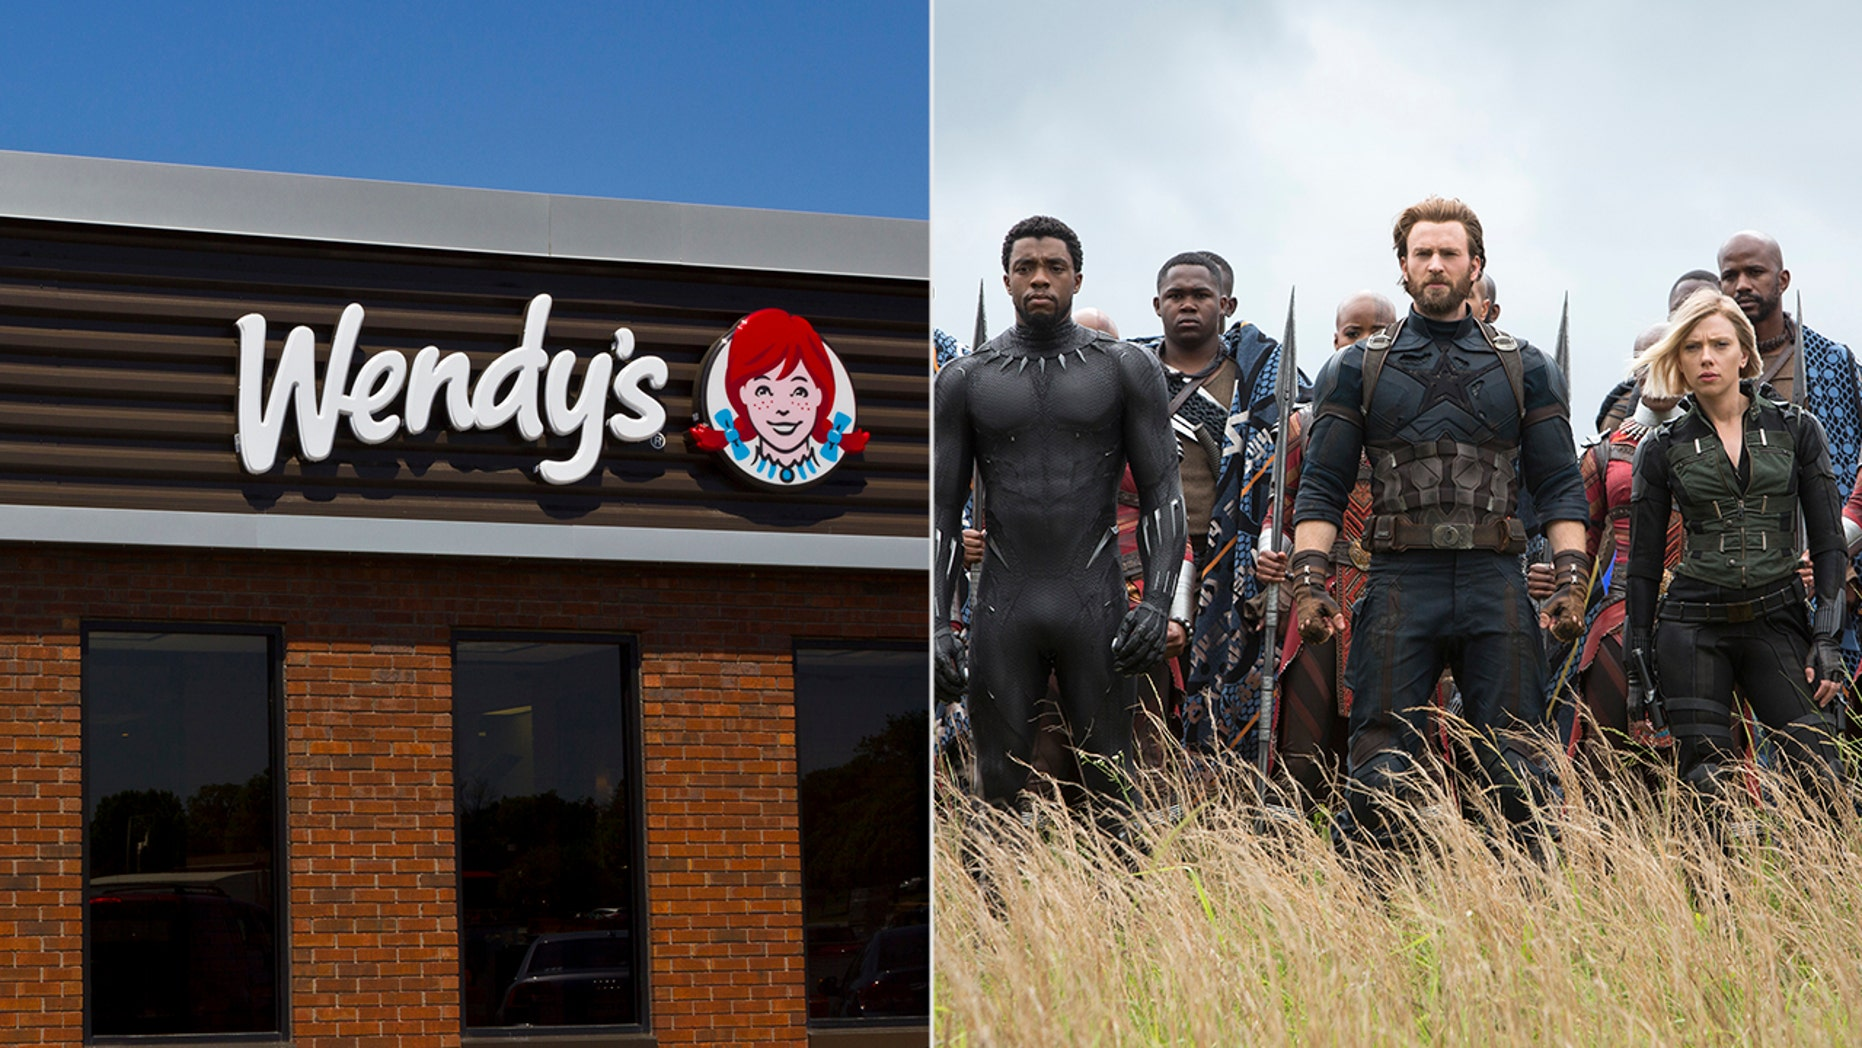 """Wendy's won't let McDonald's off the hook about its new Quarter Pounders — and now they're using an """"Avengers"""" meme to troll the company."""